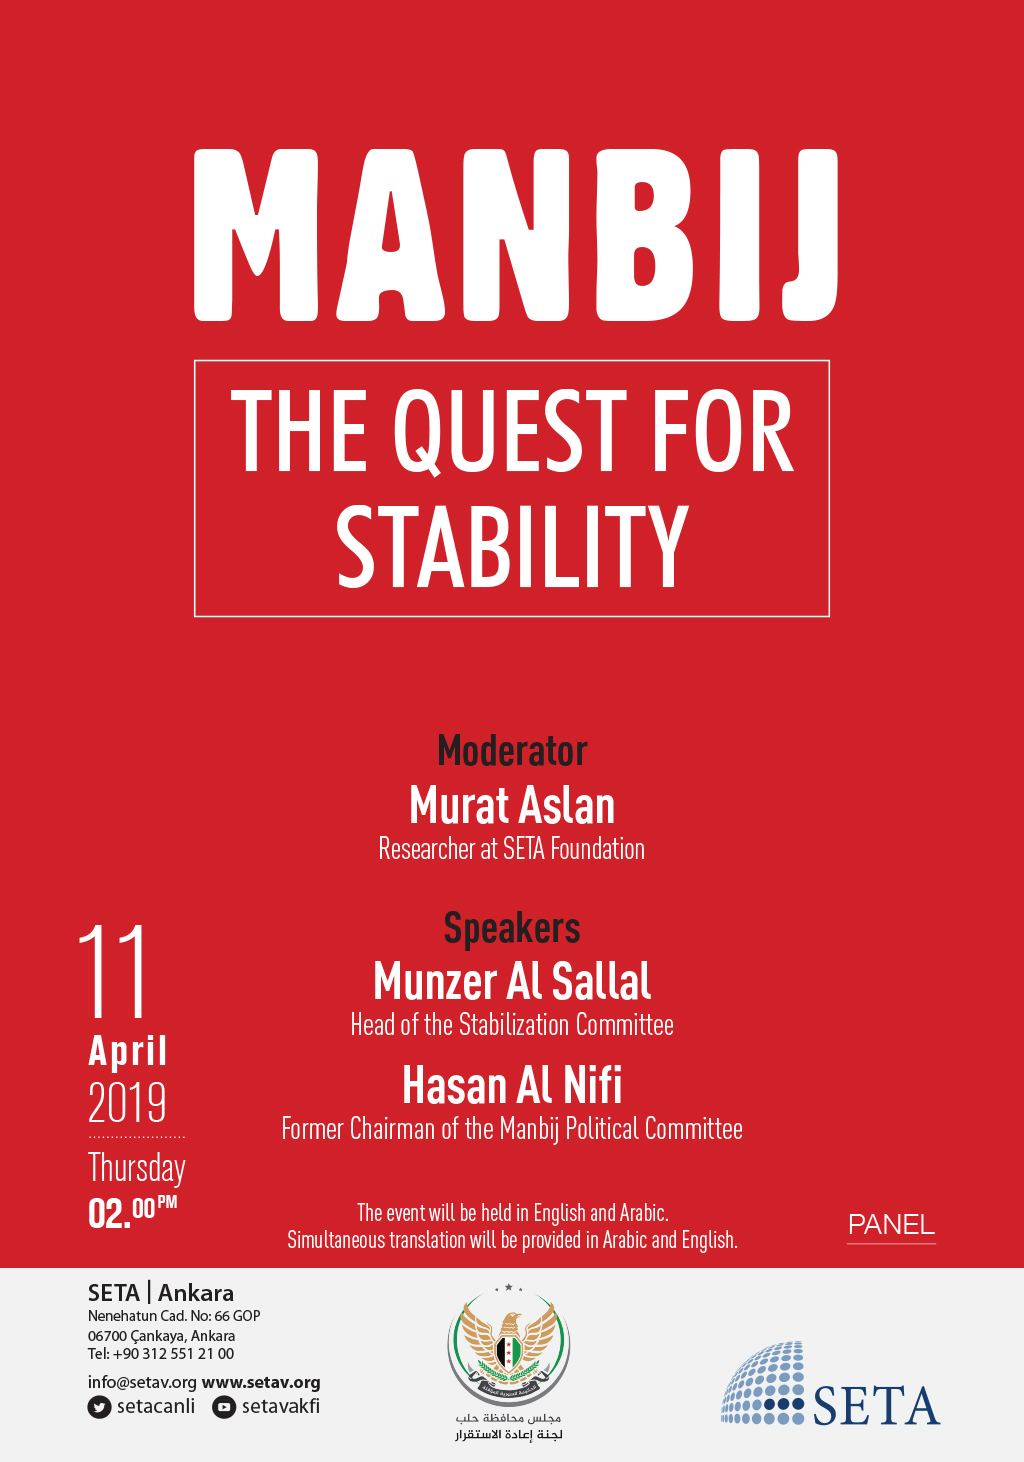 Panel: Manbij | The Quest for Stability